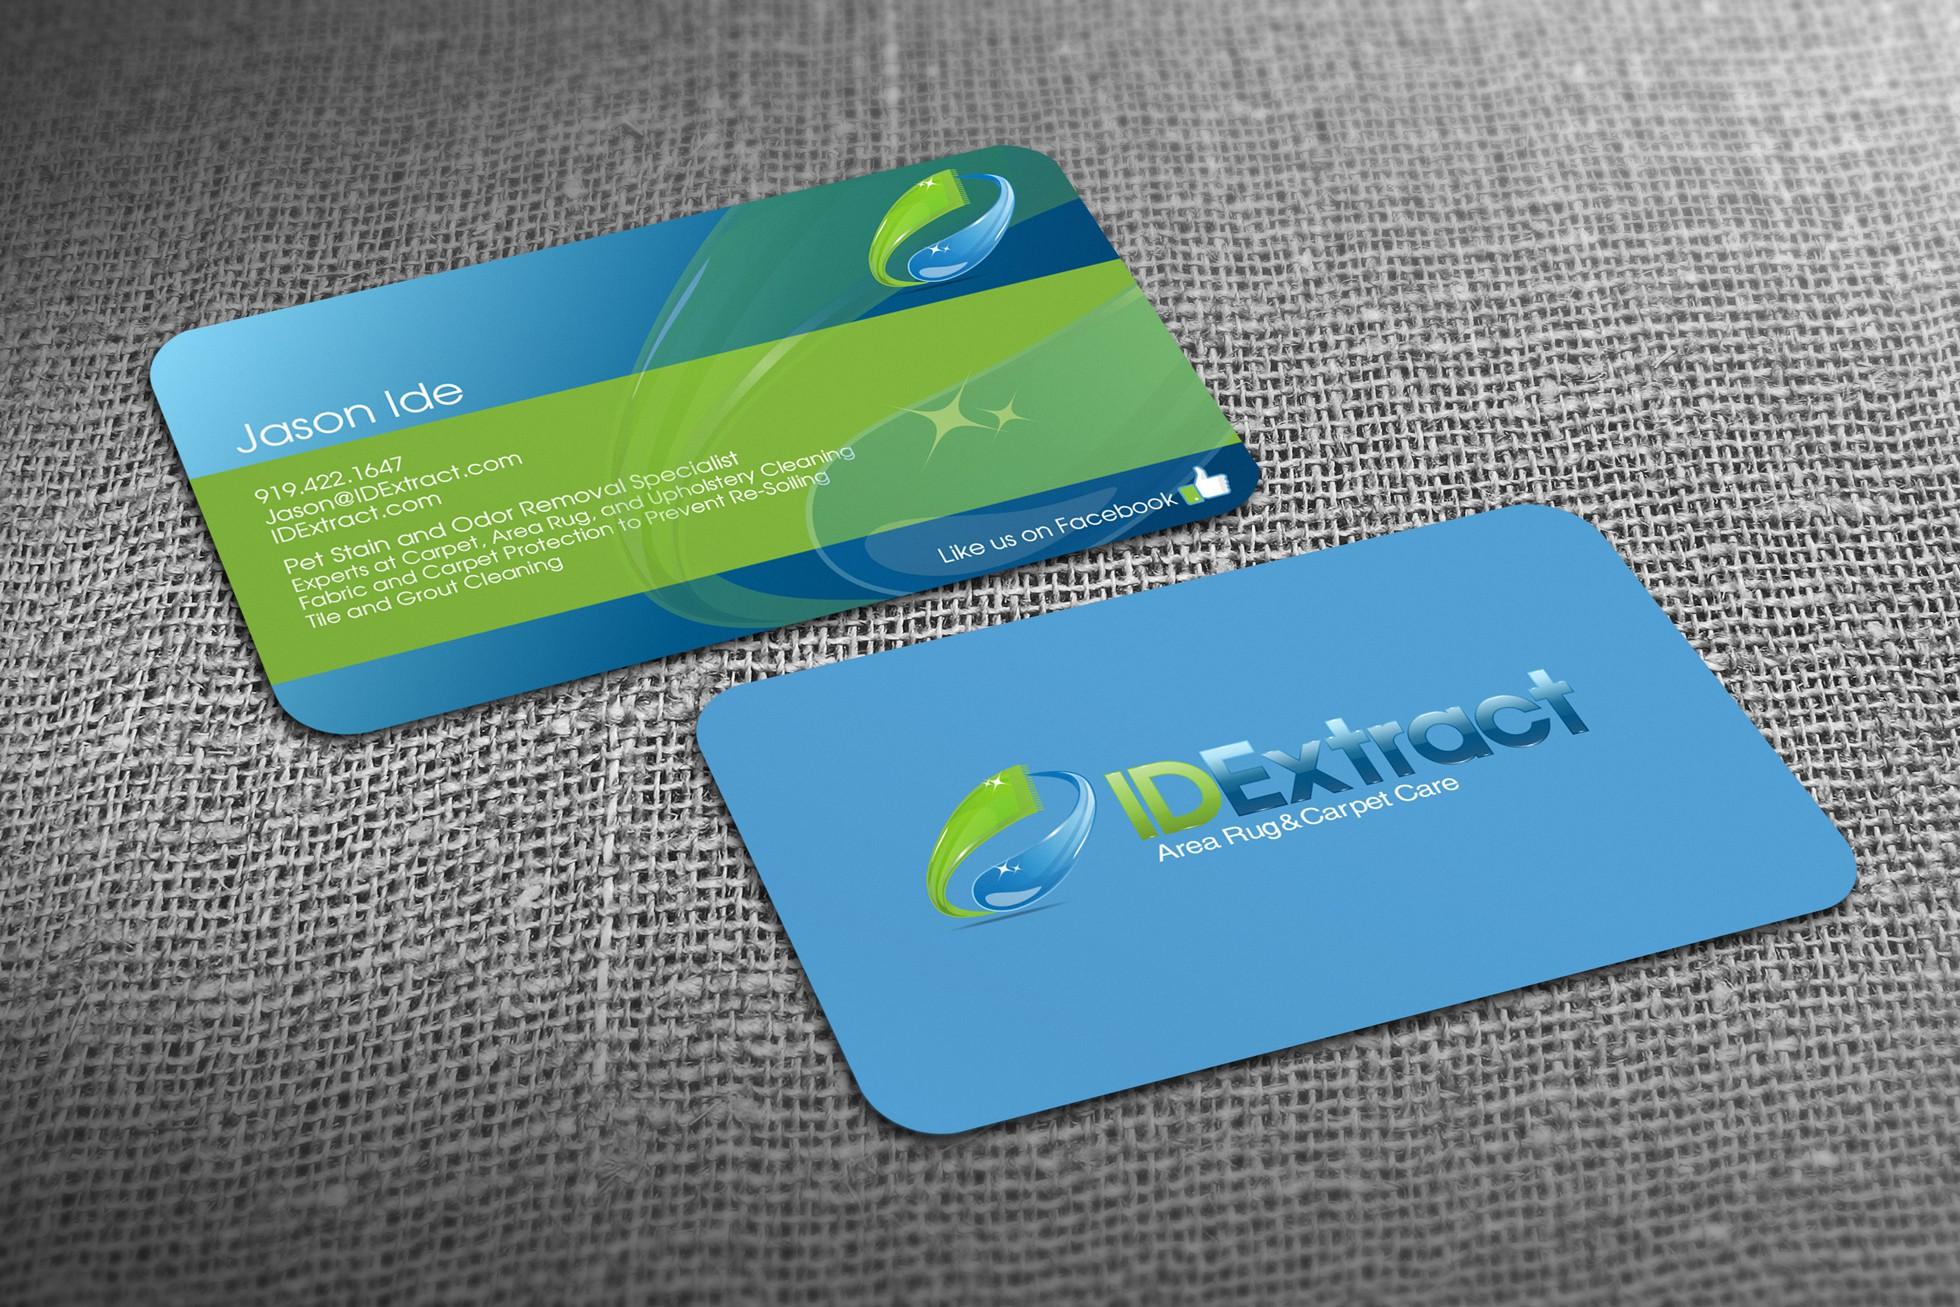 IDExtract needs a new logo and business card